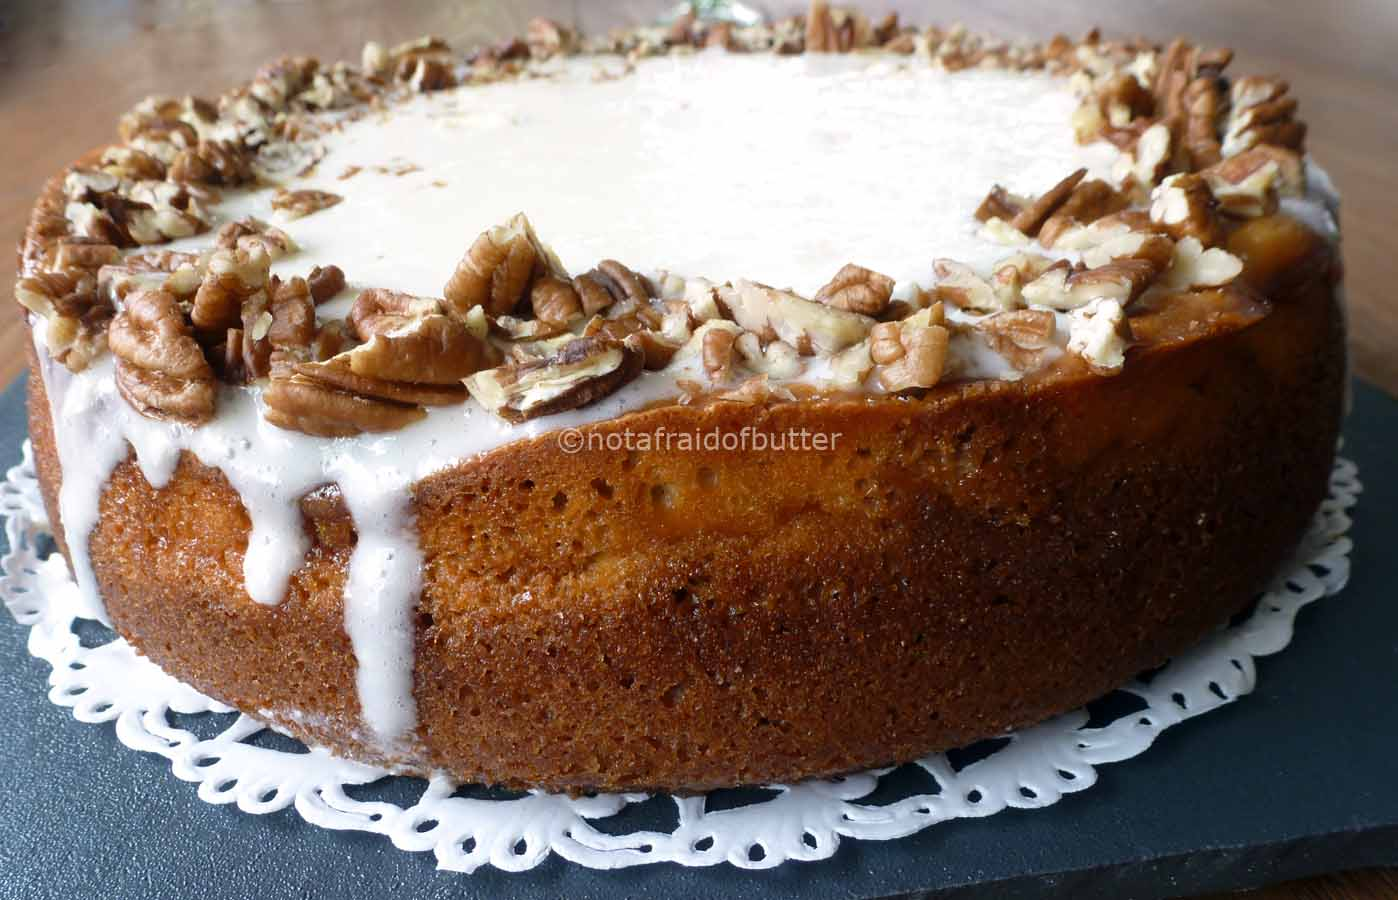 notafraidofbutter.nl| carrot cake and cheesecake combination - if you can't make up your mind